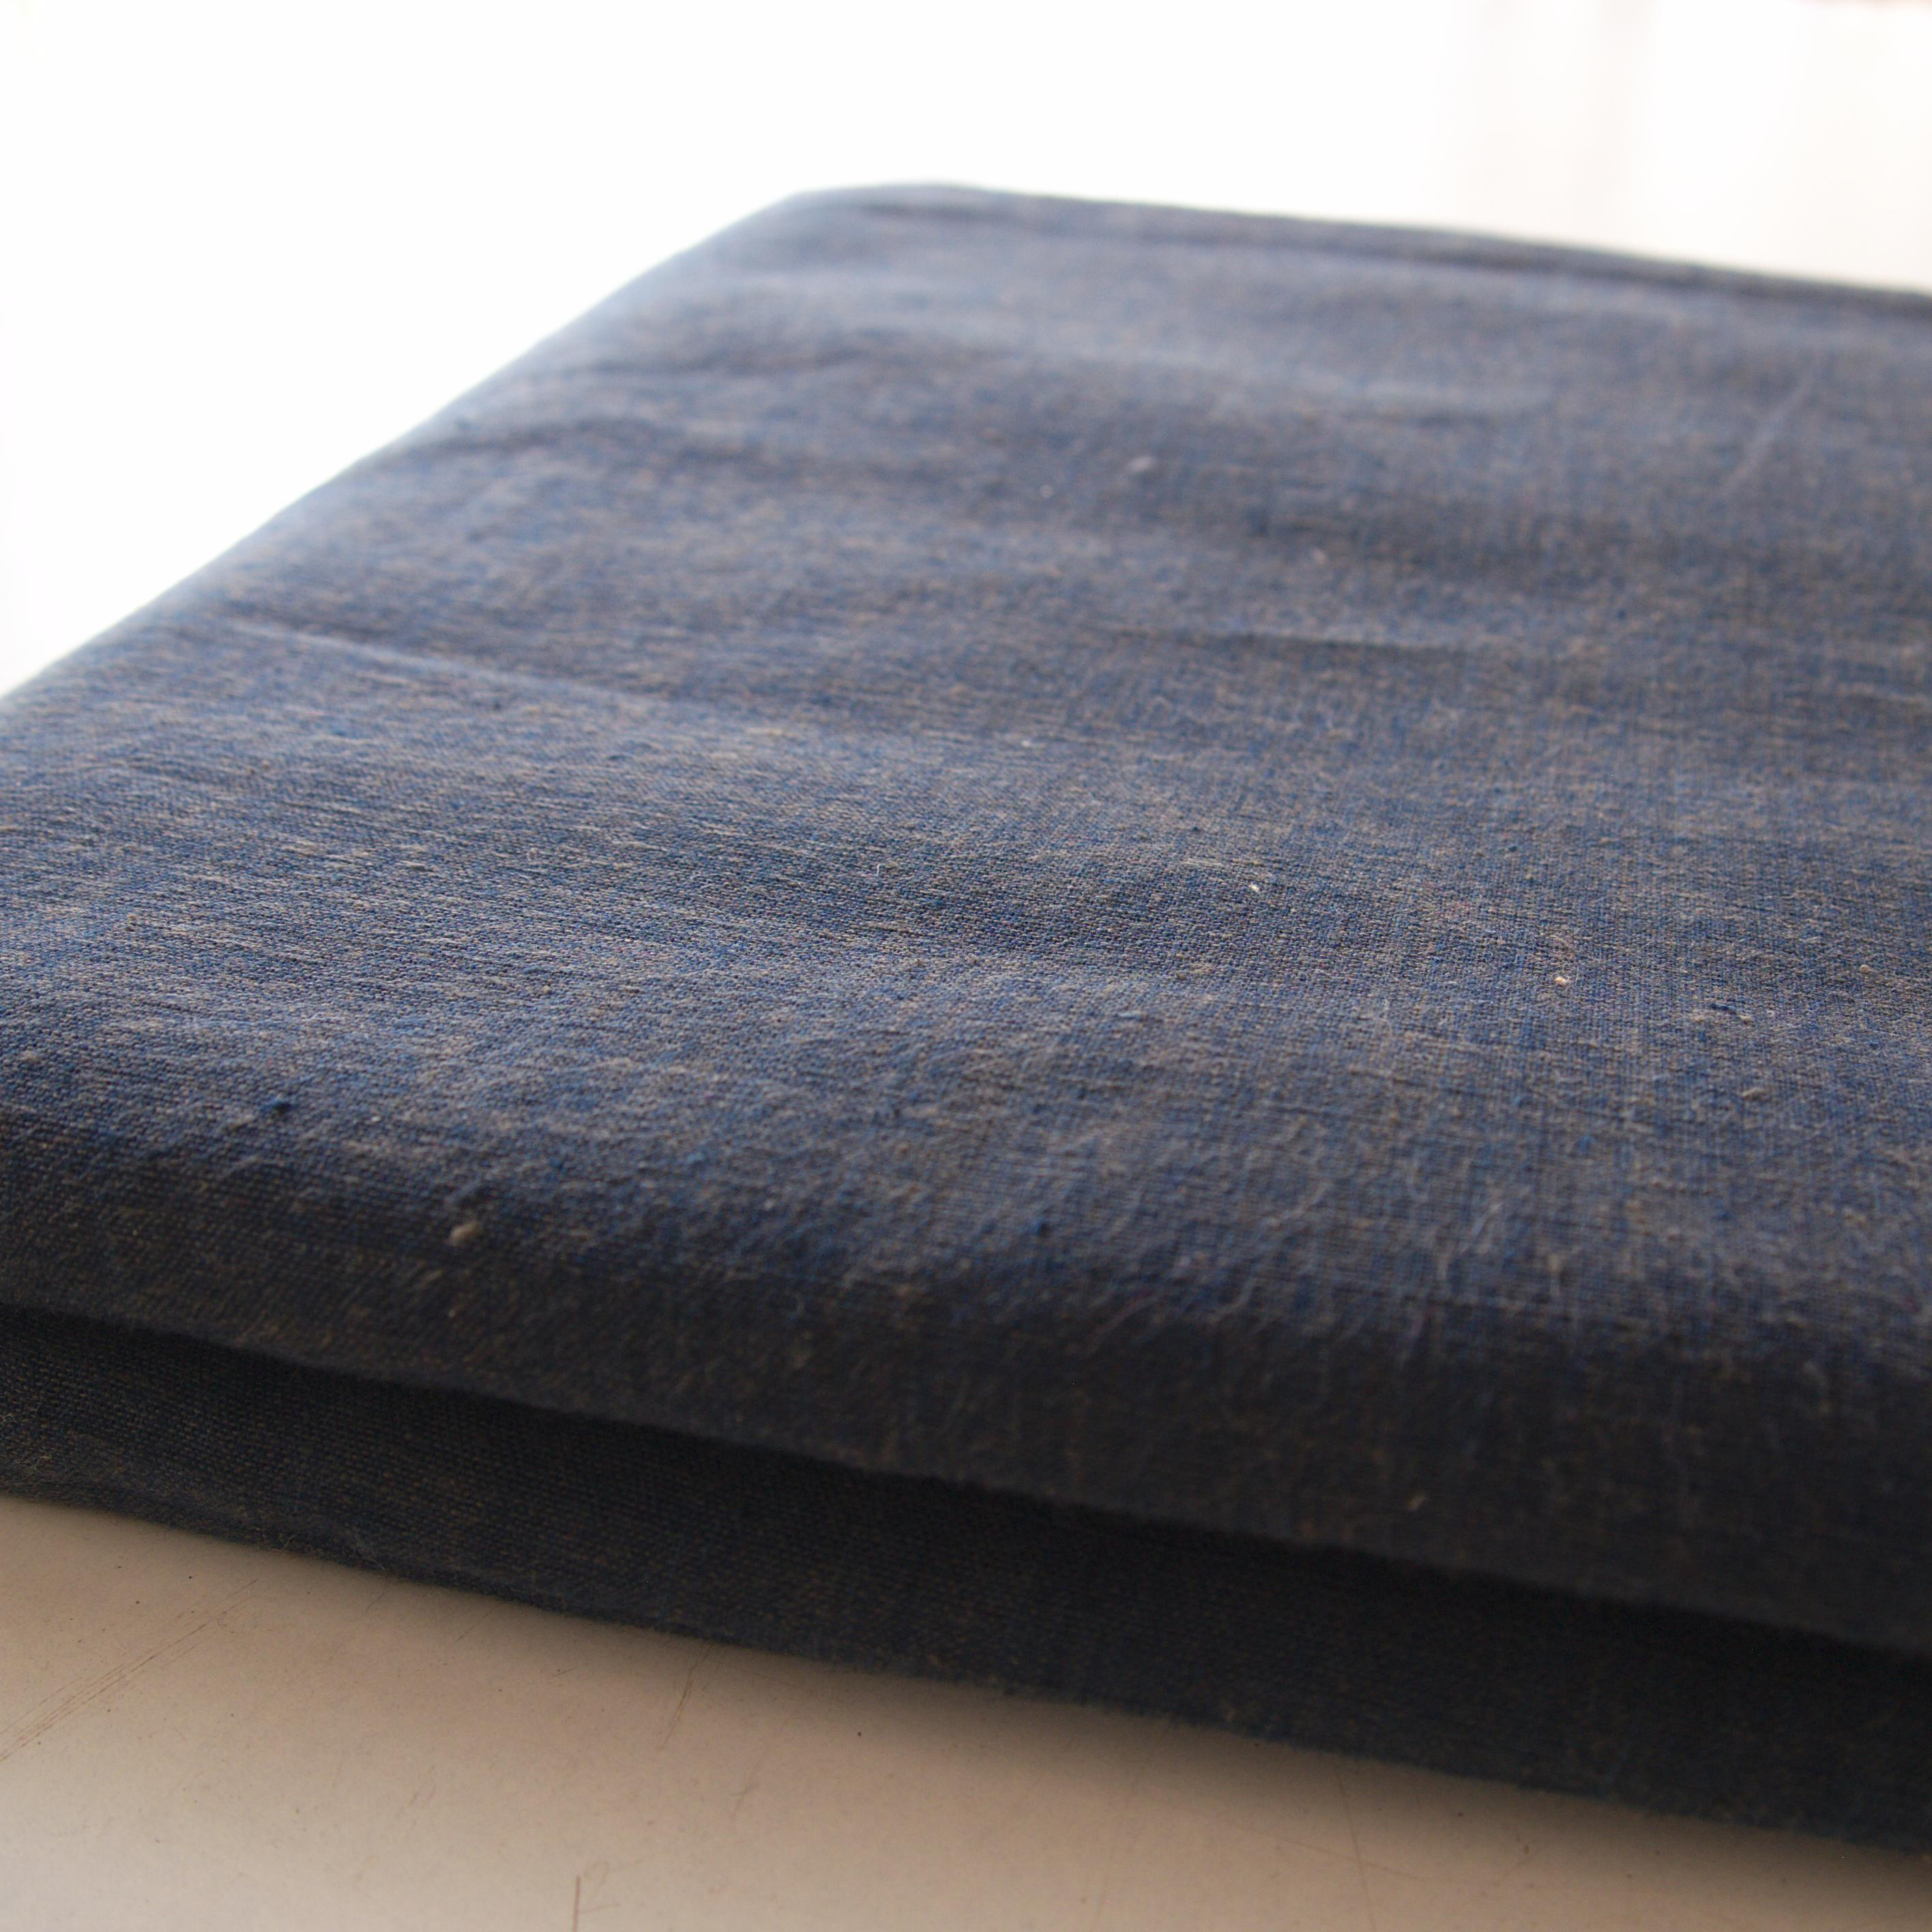 100% Handloom Woven Cotton - Natural Indigo Warp, Olive Green Weft - Cross Colour - Bolt